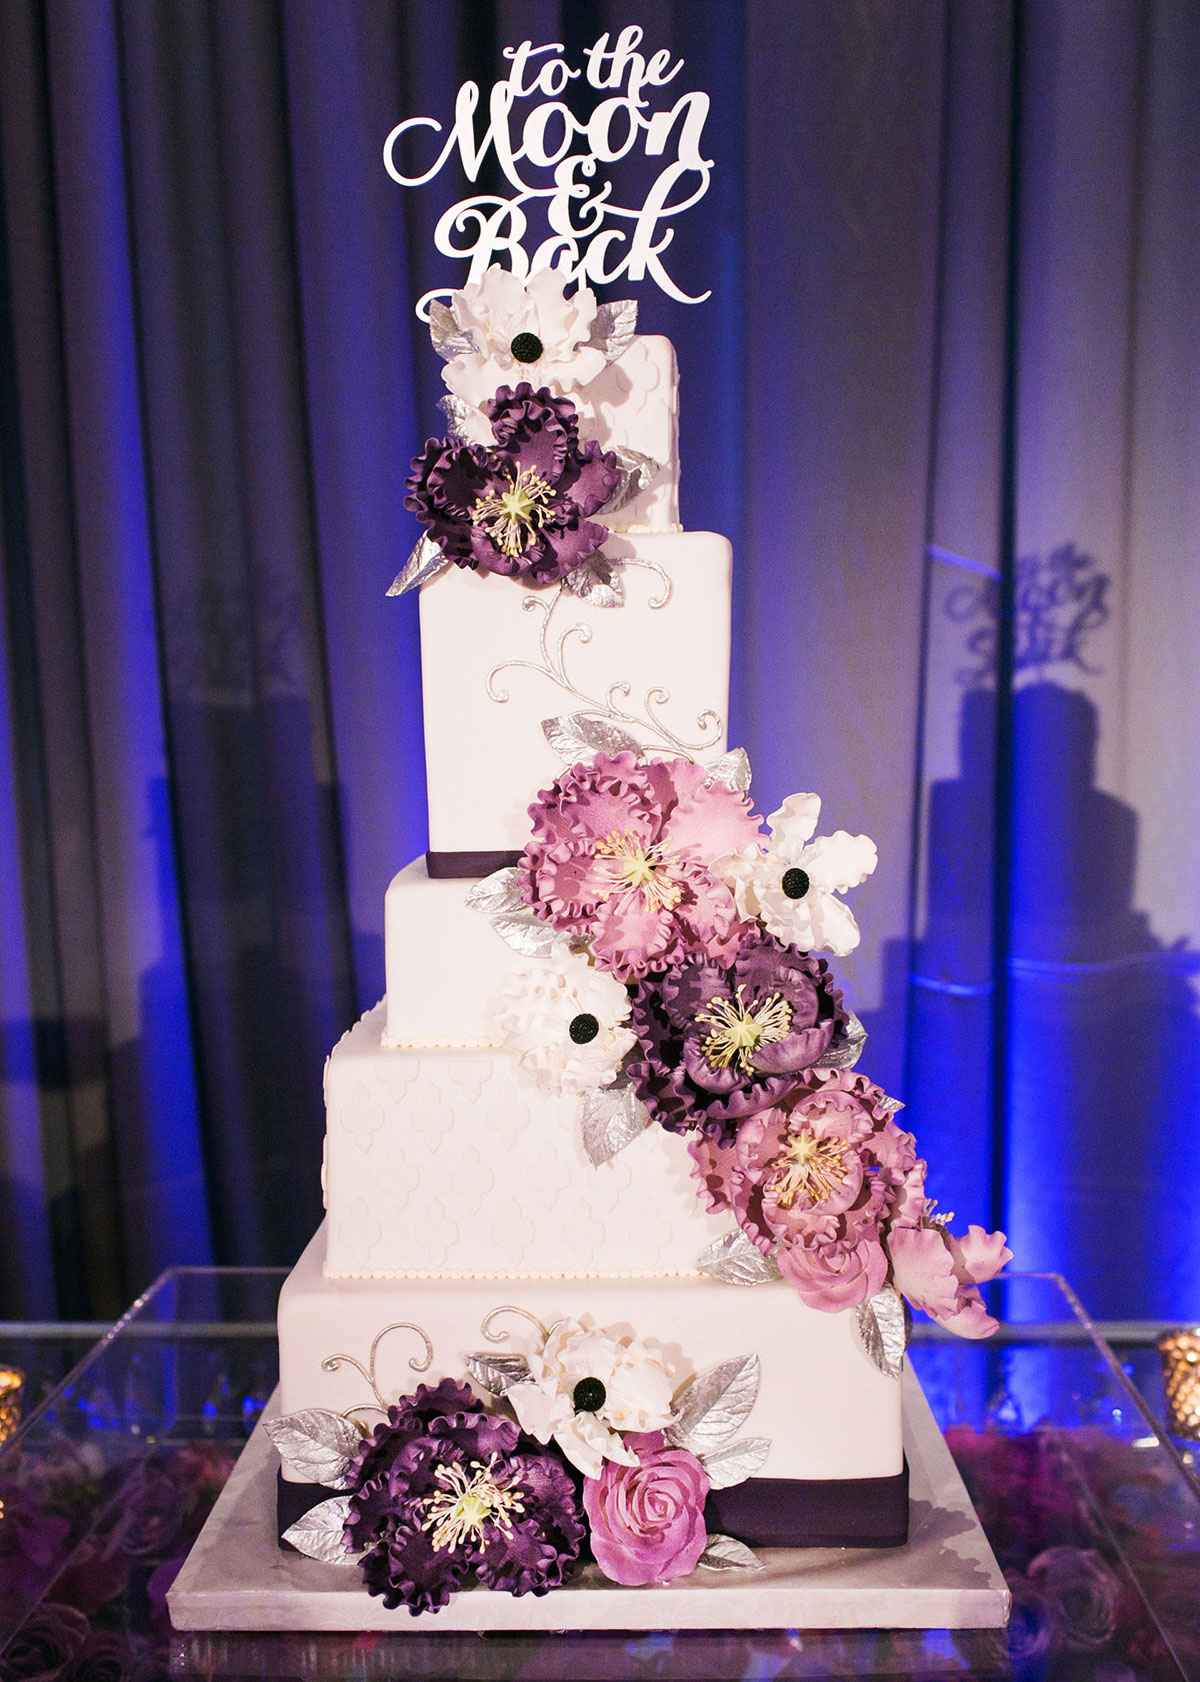 square wedding cakes purple flowers wedding cake ideas nontraditional wedding cake 20409